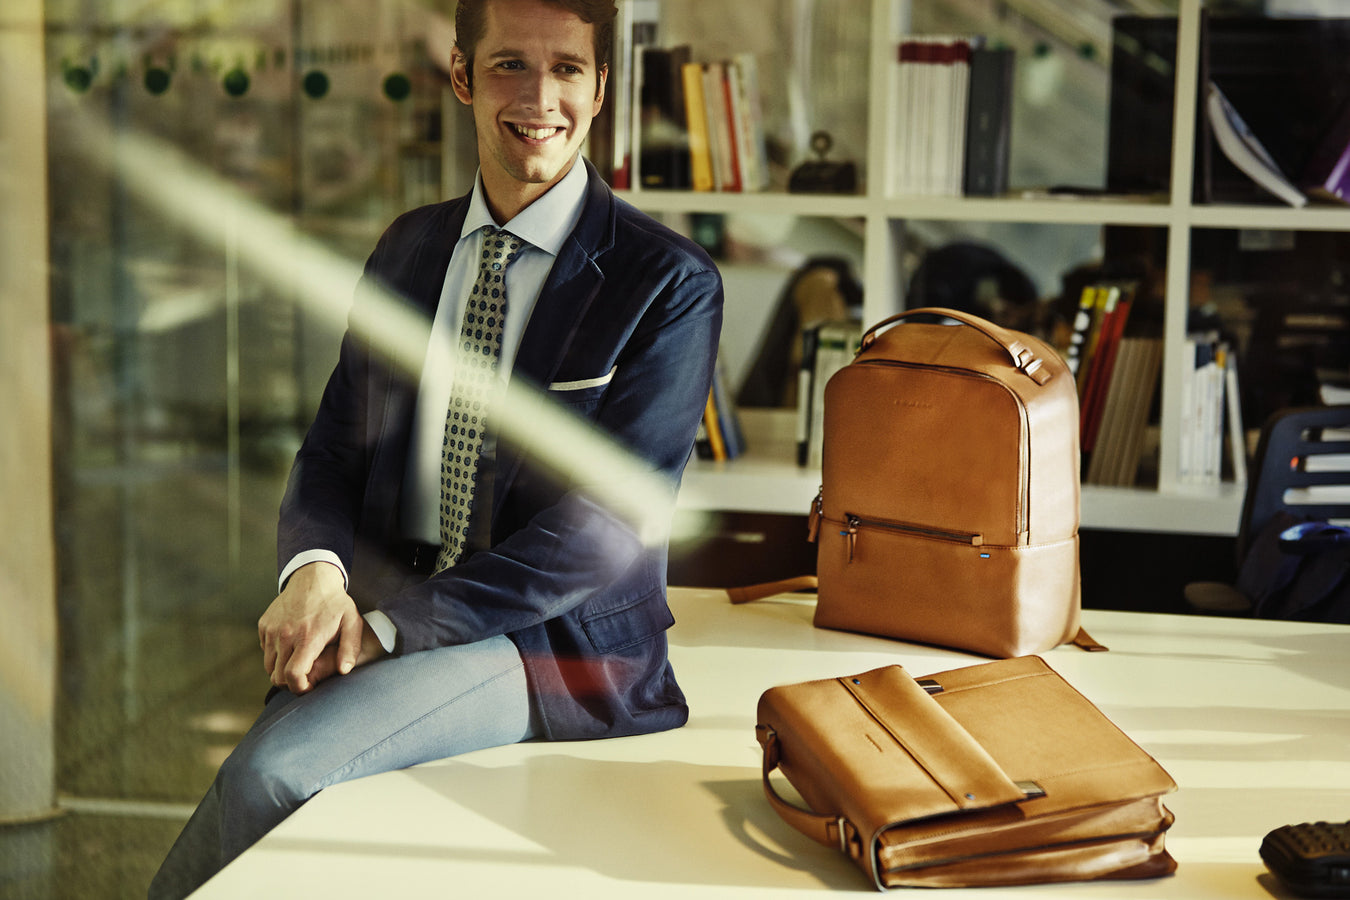 piquadro mens leather bags,backpack & briefcase